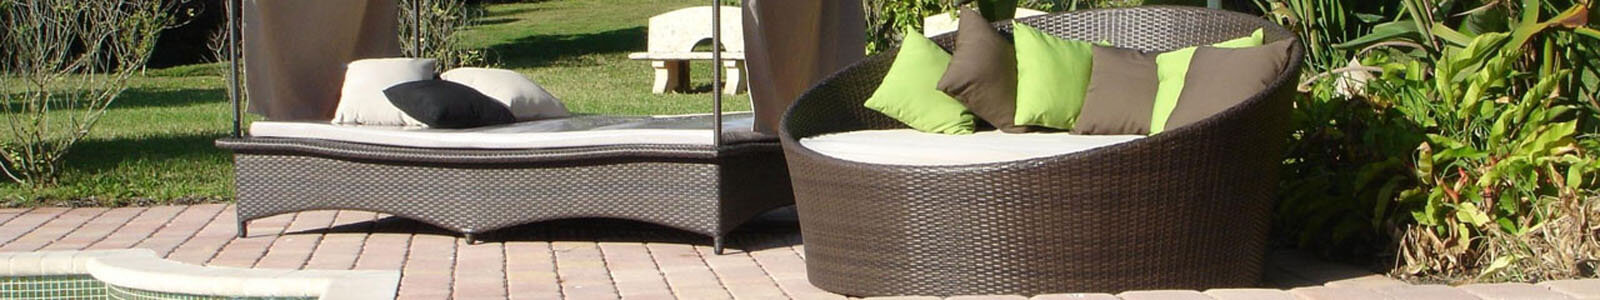 Jaavan Outdoor Patio Furniture Lounge Sets Luxedecor